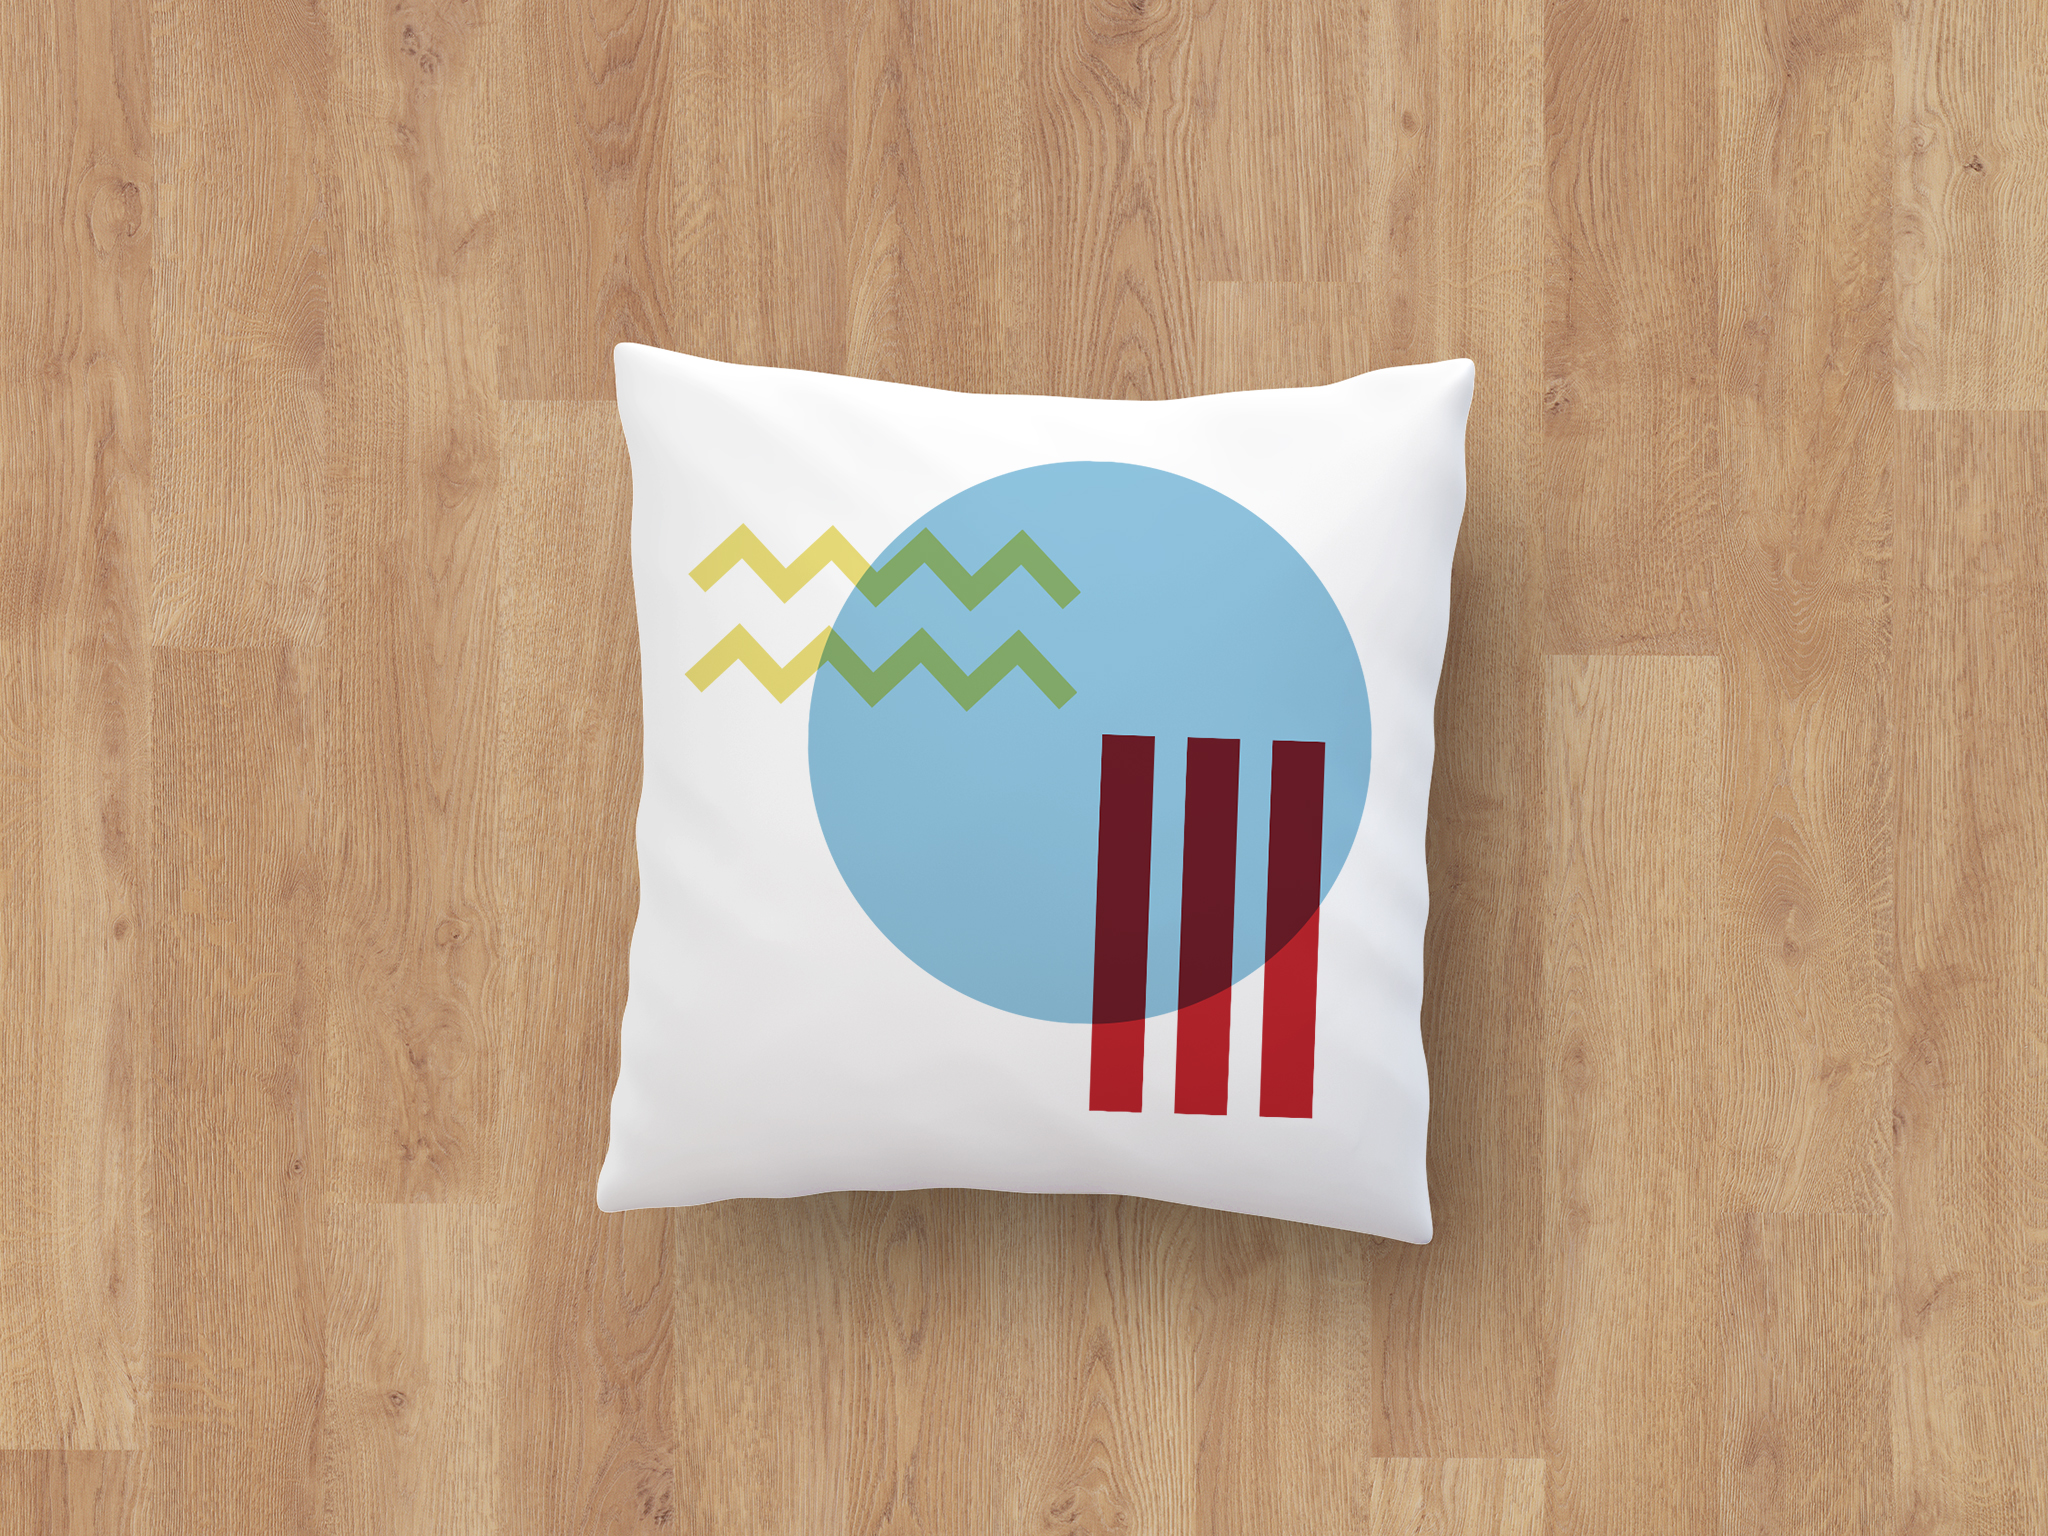 stockhome_pillow01